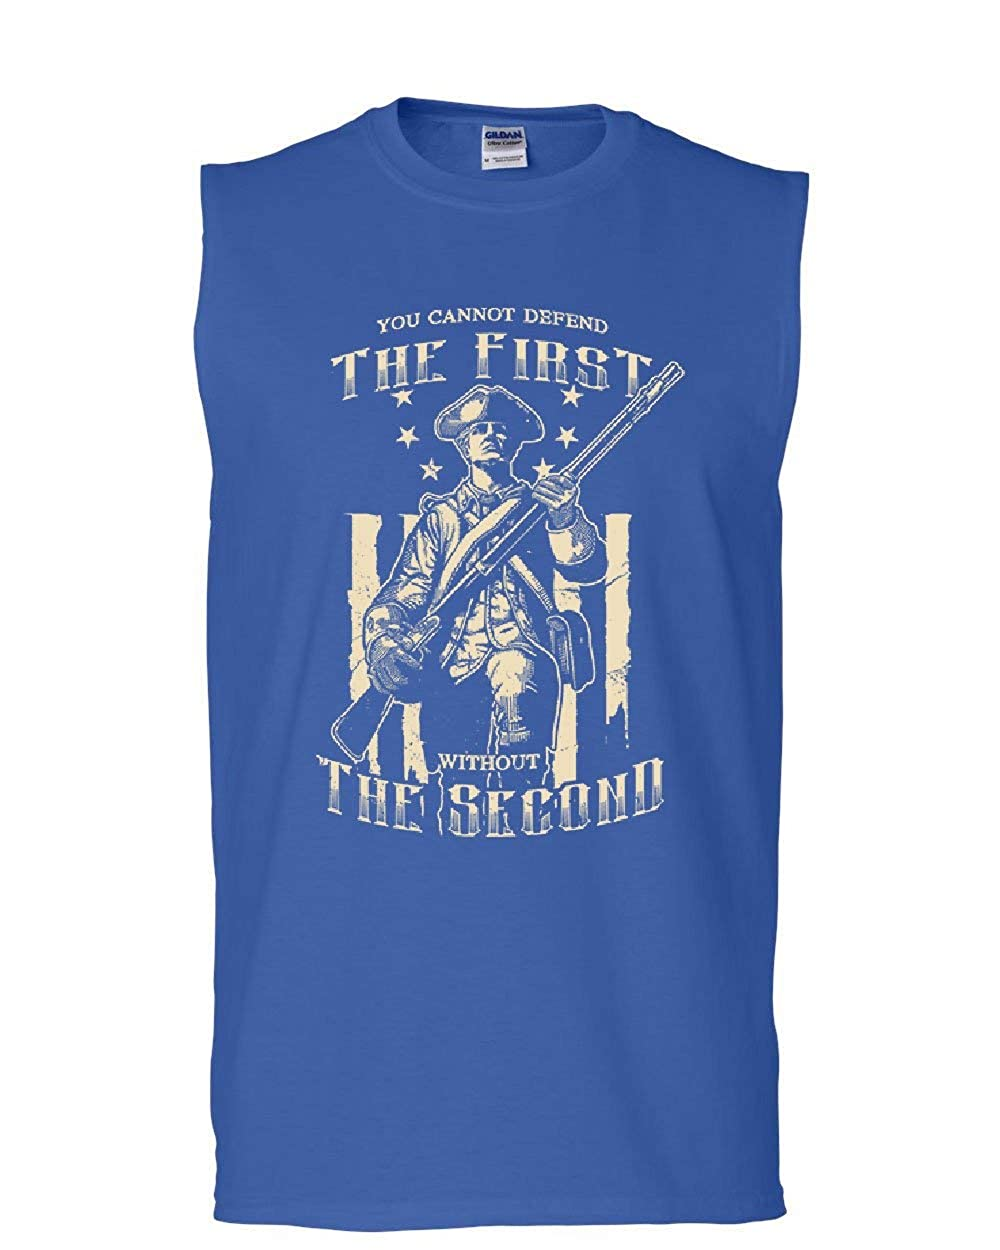 Tee Hunt You Cant Defend The First Without The Second Muscle Shirt Militia 2A Sleeveless